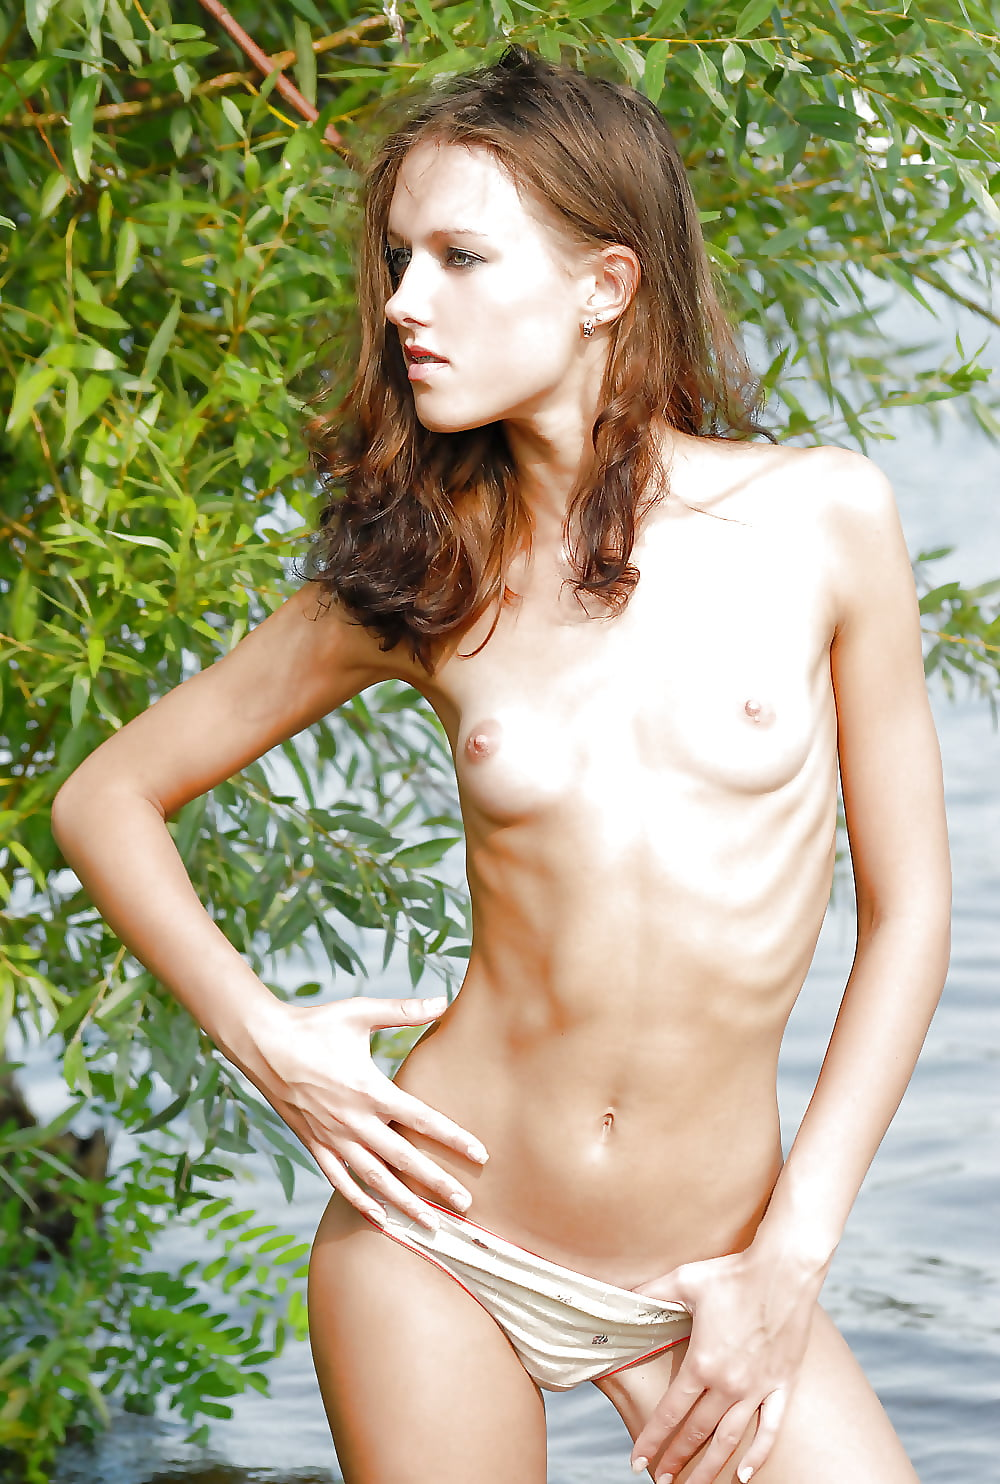 Skinny Teen Nude Pics Xxx Pictures Hd